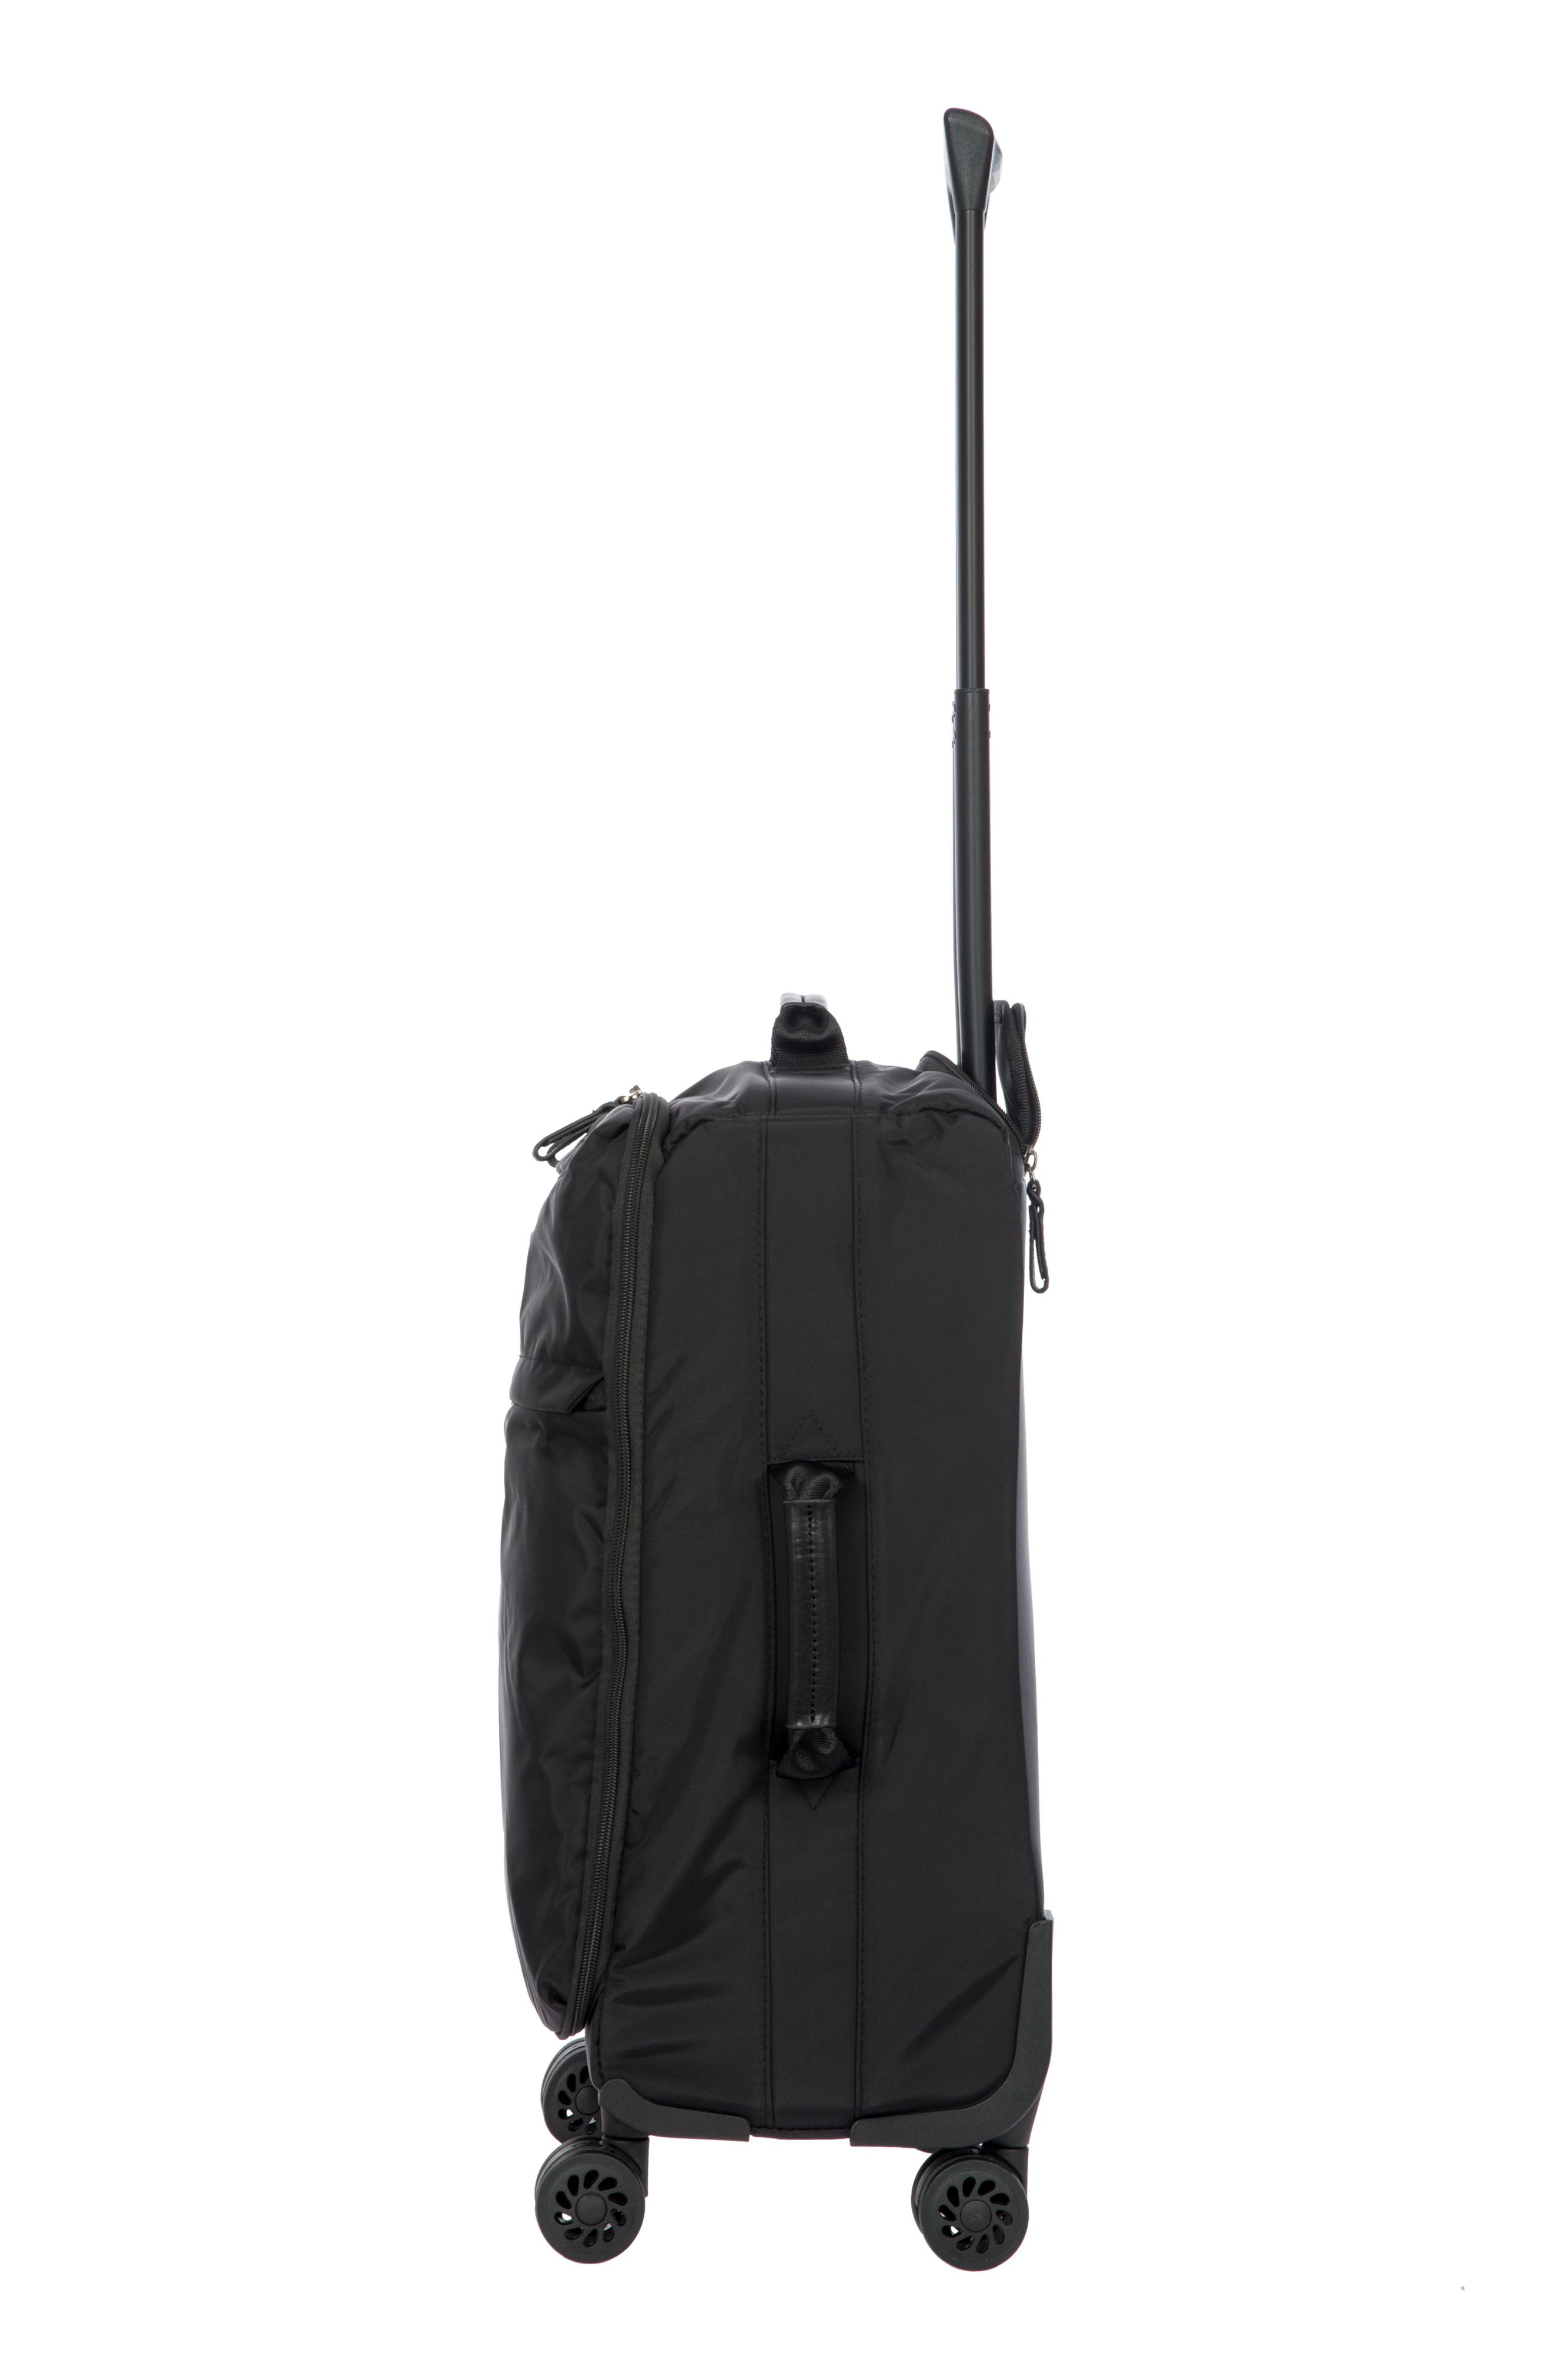 X-Bag 21-Inch Spinner Carry-On,                             Alternate thumbnail 3, color,                             BLACK/ BLACK